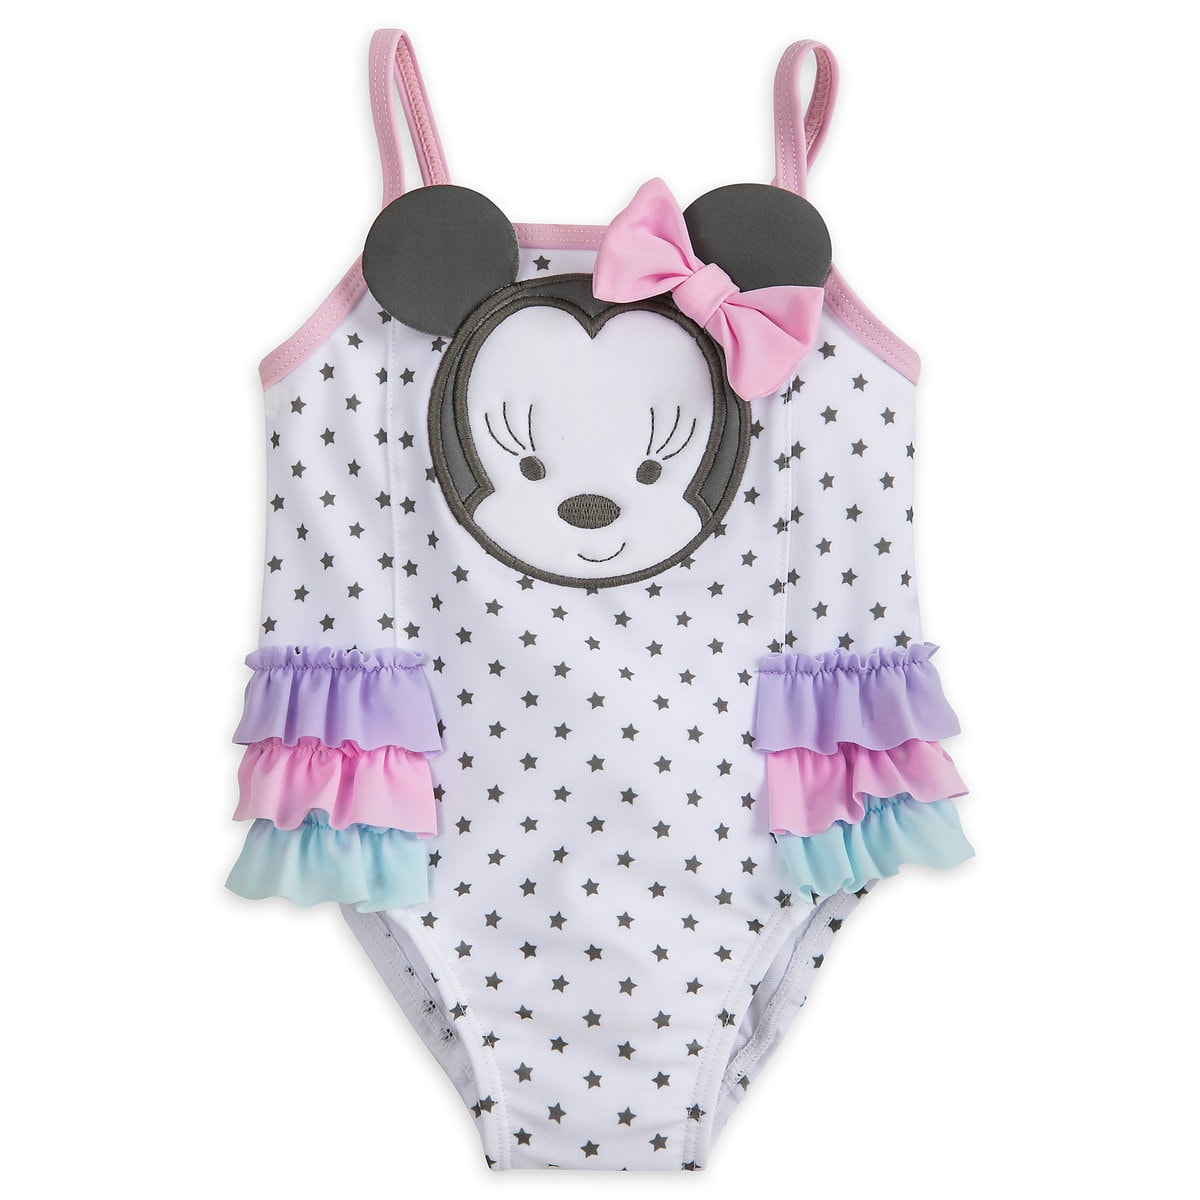 8c5f3e9e46c17 Product Image of Minnie Mouse Swimsuit for Baby # 1